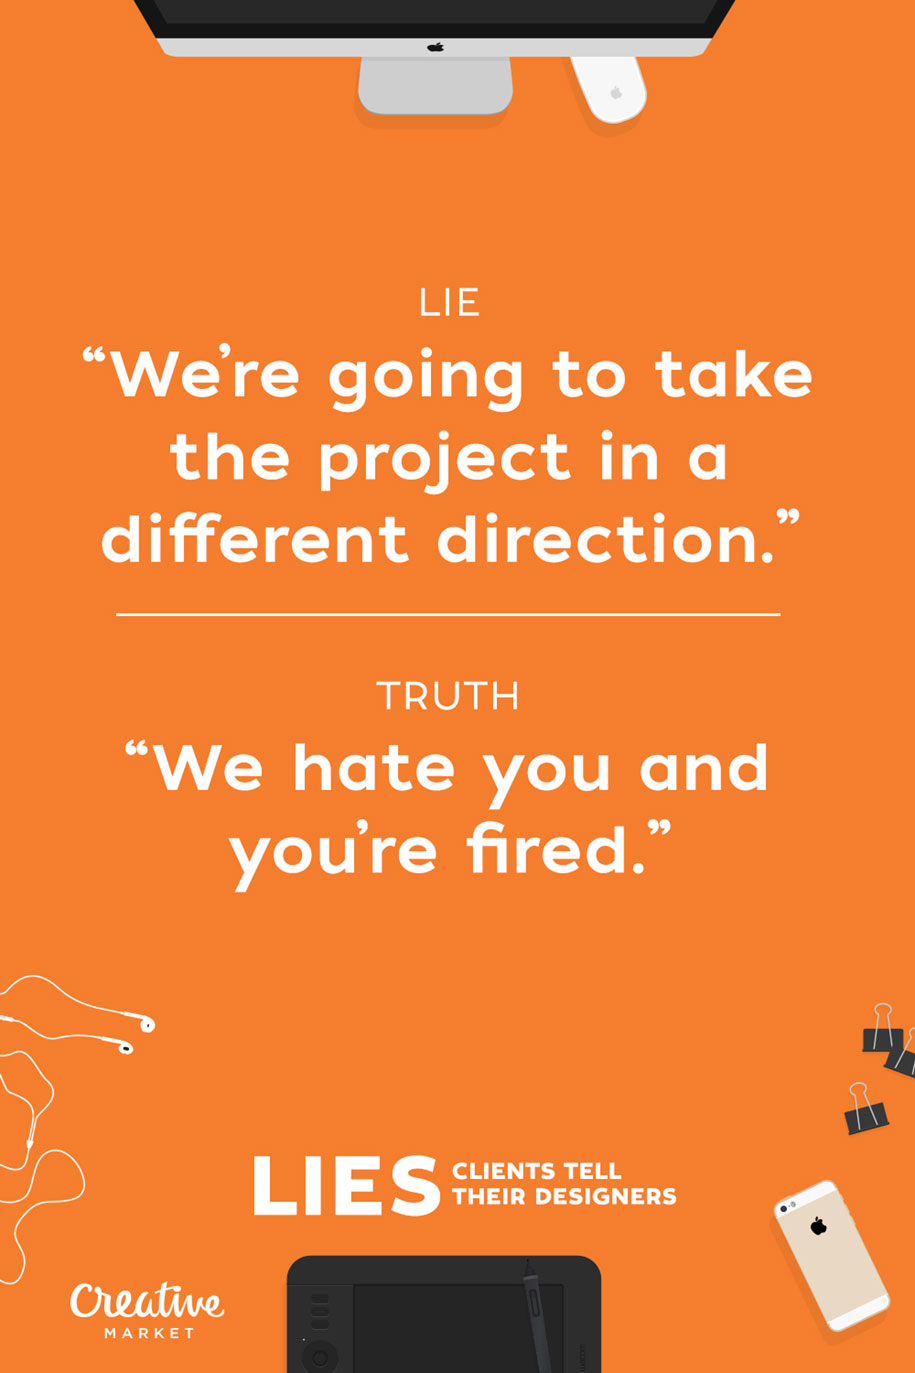 15-lies-clients-tell-designers-joshua-johnson-creative-market-13